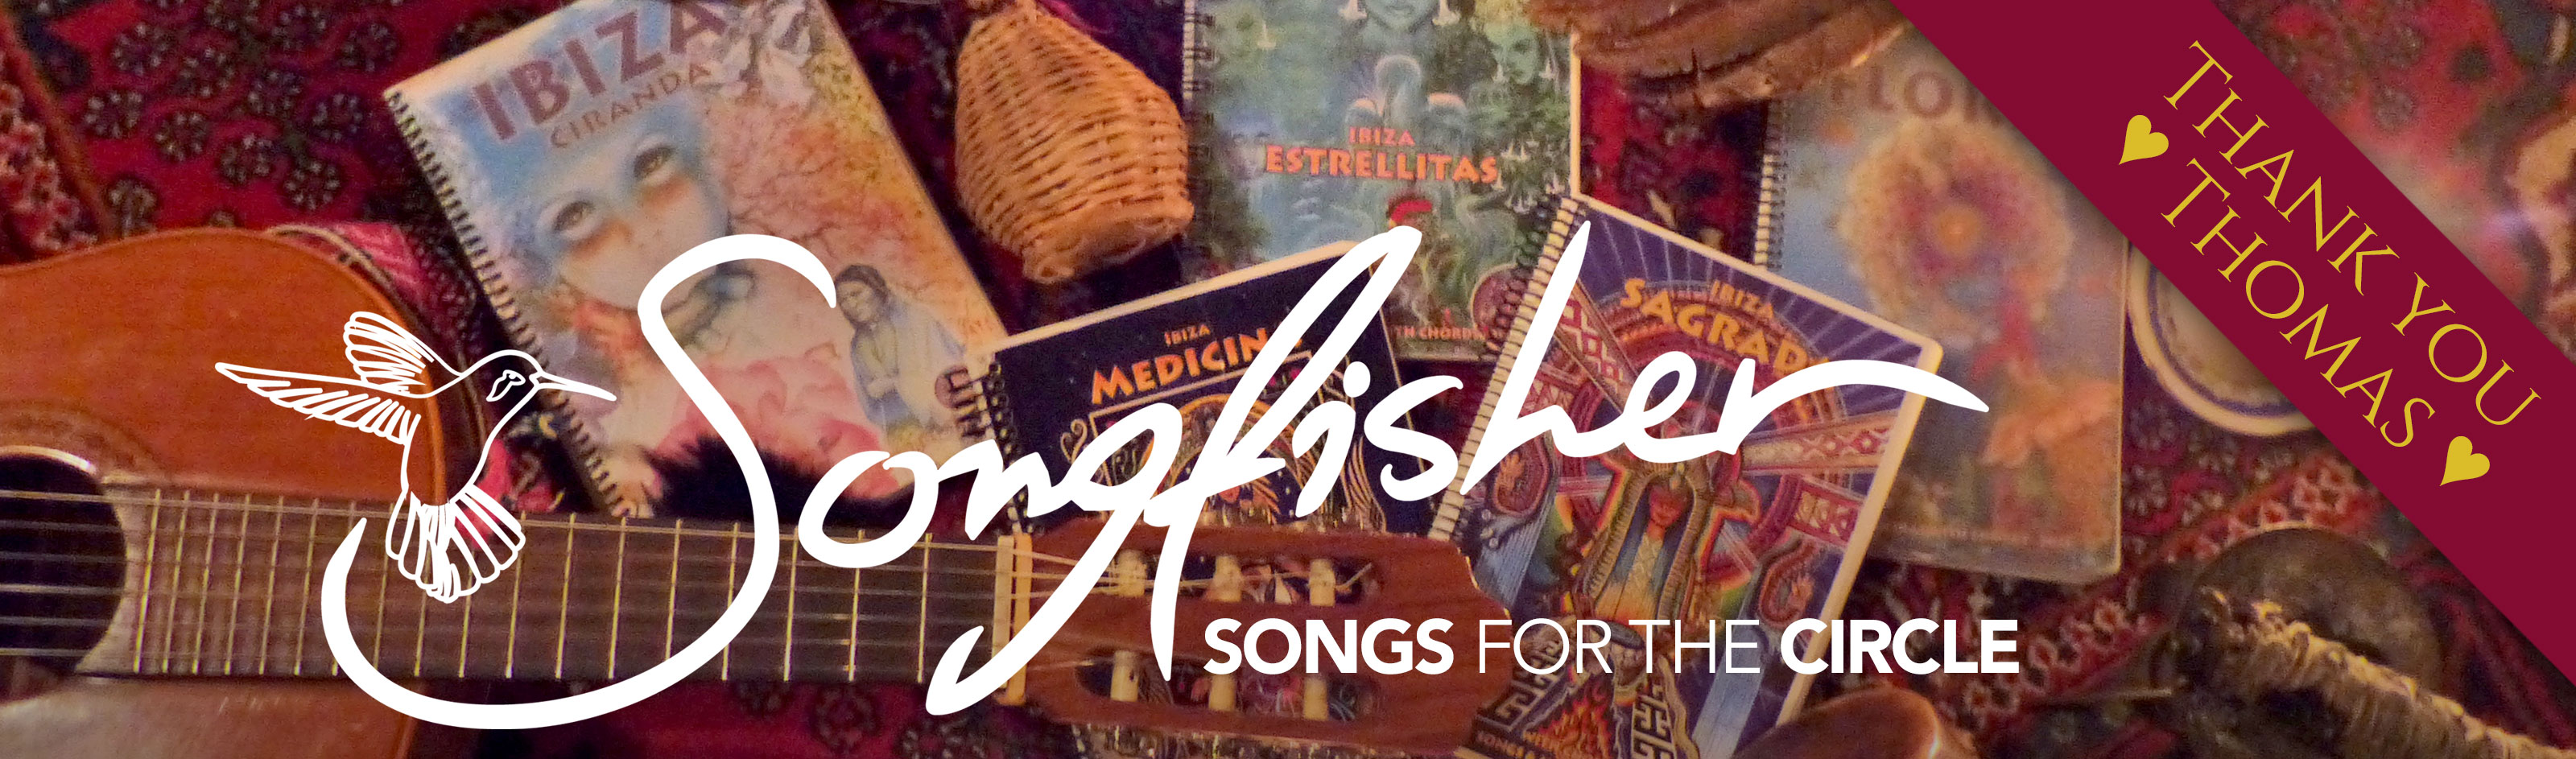 Songfisher org ~ Songbooks